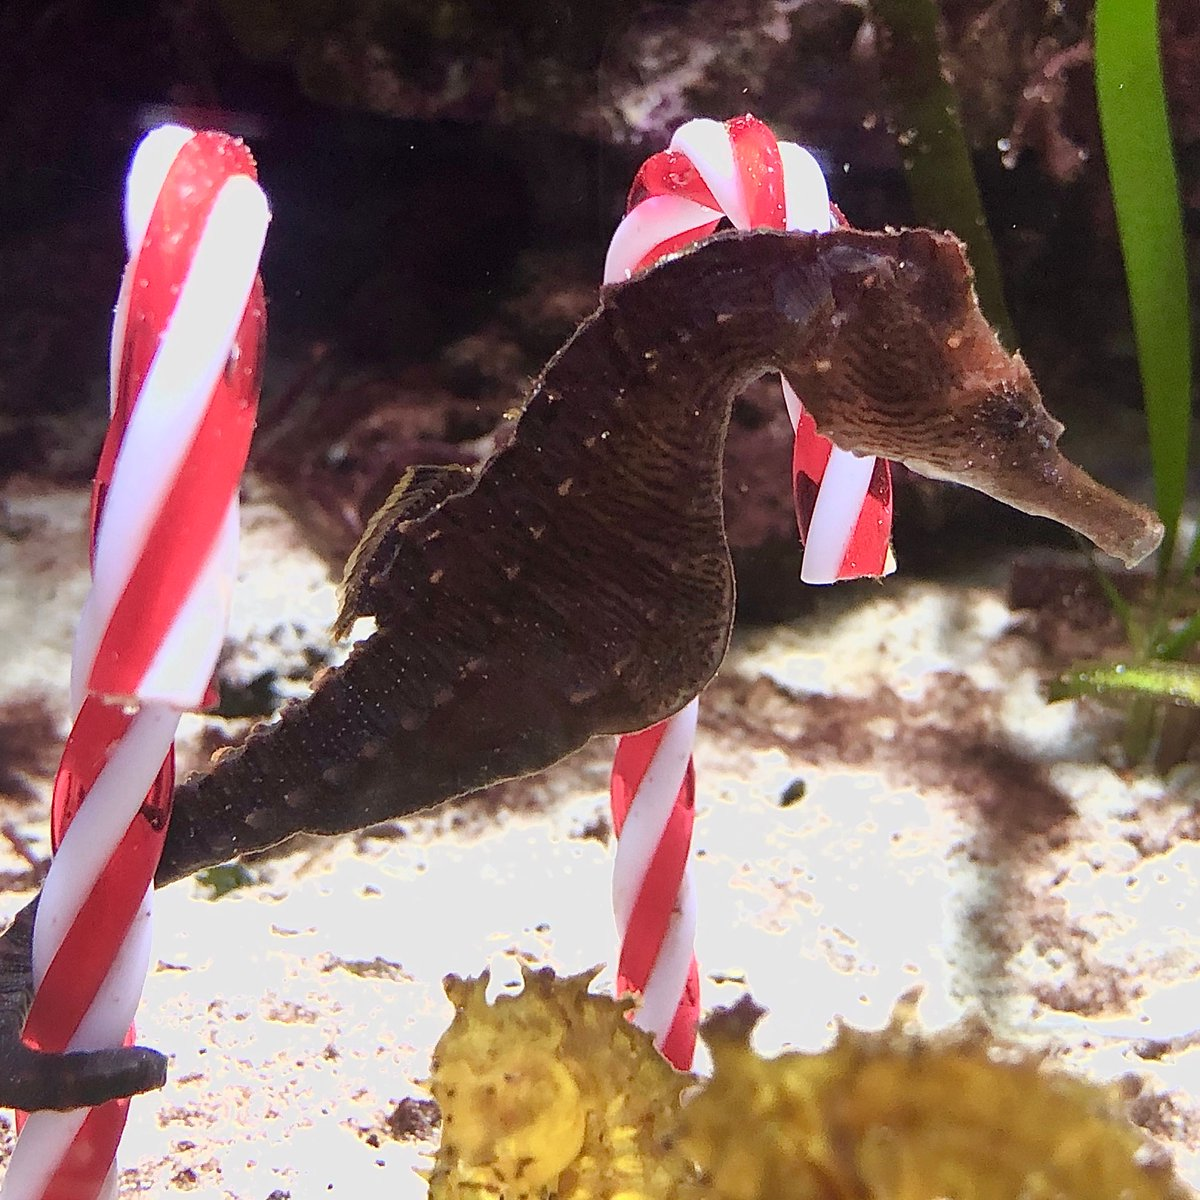 From our Shedd Aquarium family to yours, have a safe and happy holiday season.